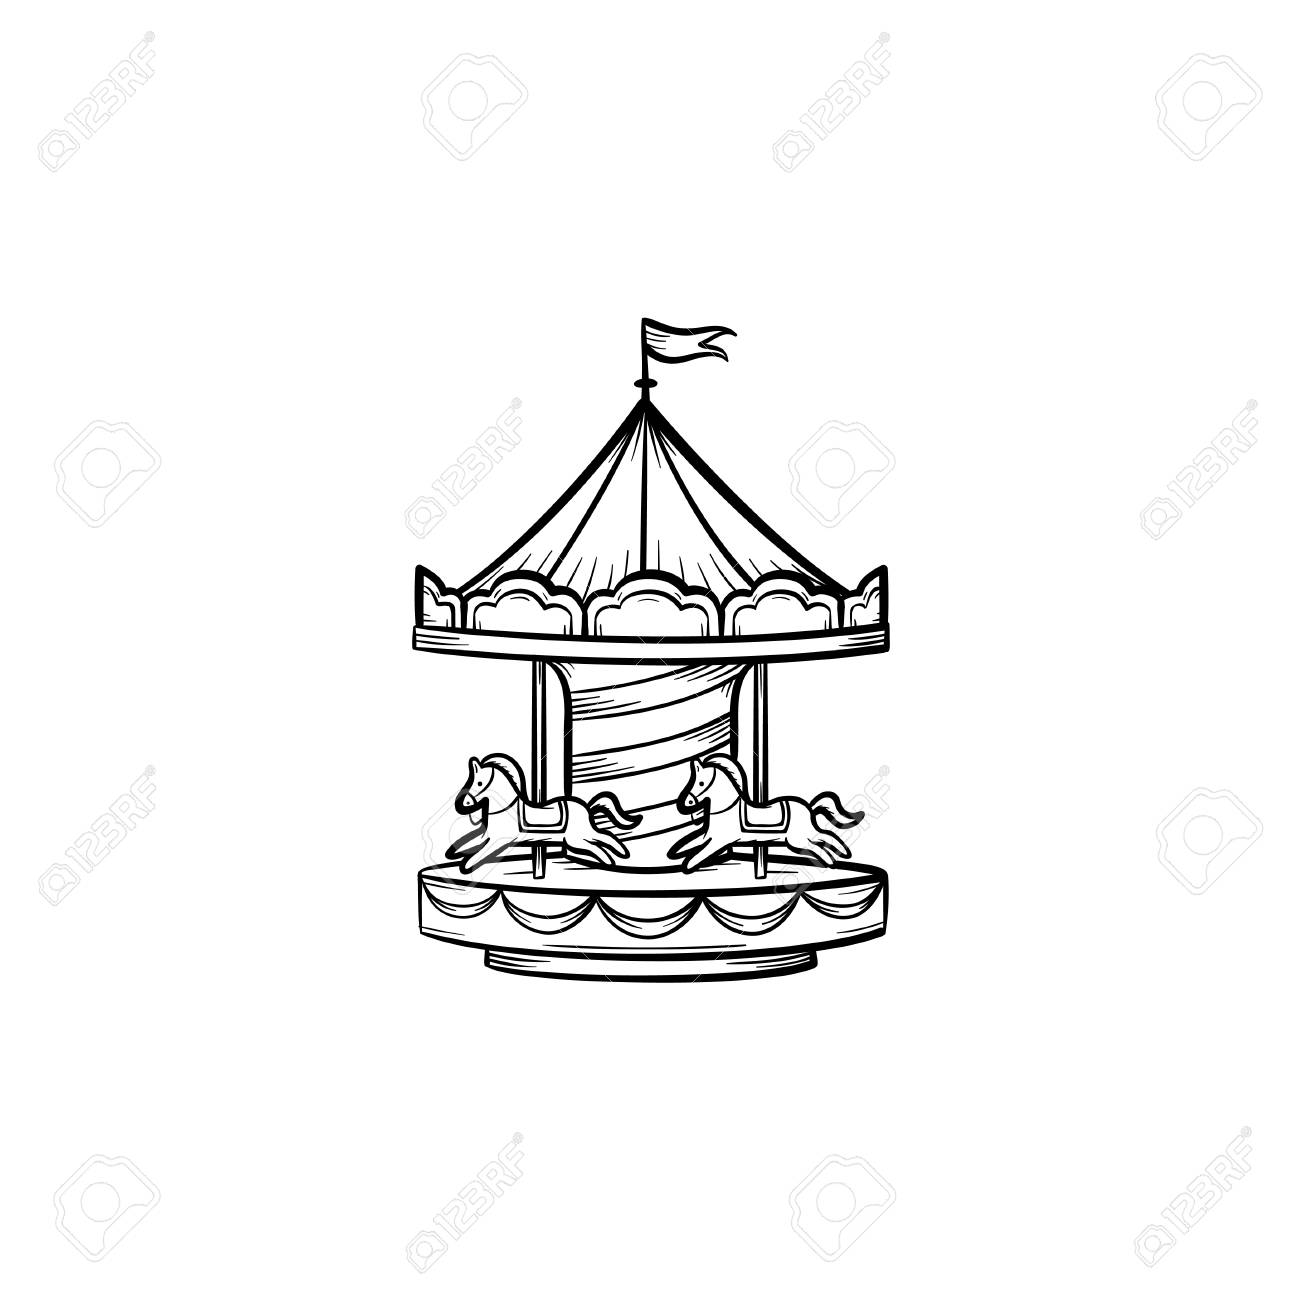 Merry Go Round Hand Drawn Outline Doodle Icon Carousel Vector Royalty Free Cliparts Vectors And Stock Illustration Image 96443367